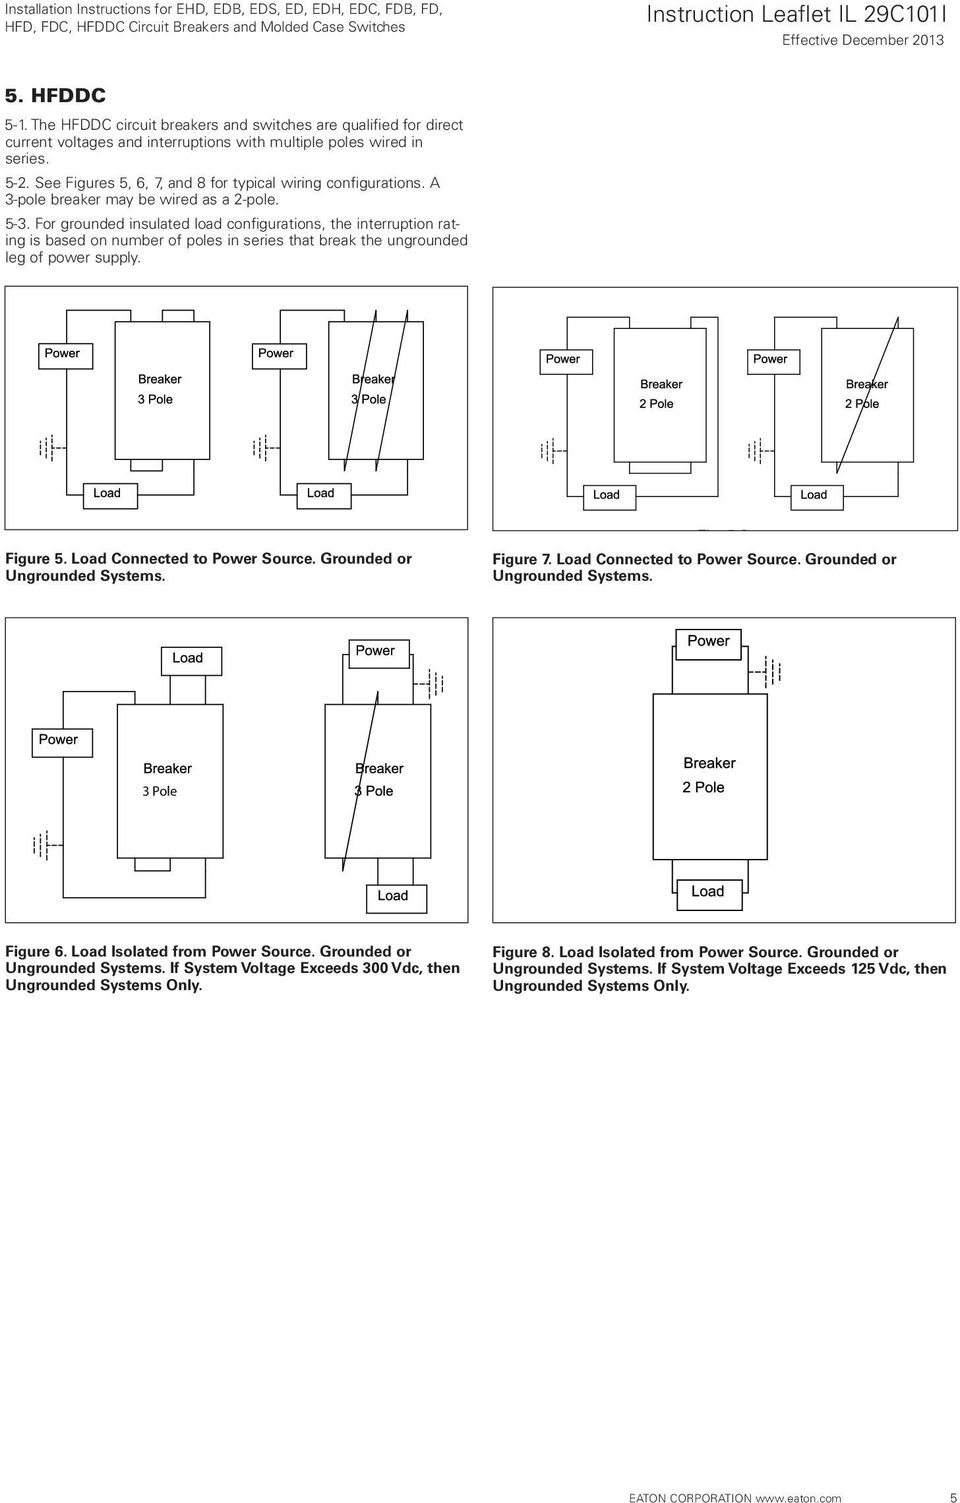 Installation Instructions For Ehd Edb Eds Ed Edh Edc Fdb Fd Circuit Breakers Gt Id Series Earth Leakage Breaker Grounded Insulated Load Configurations The Interruption Rating Is Based On Number Of Poles In